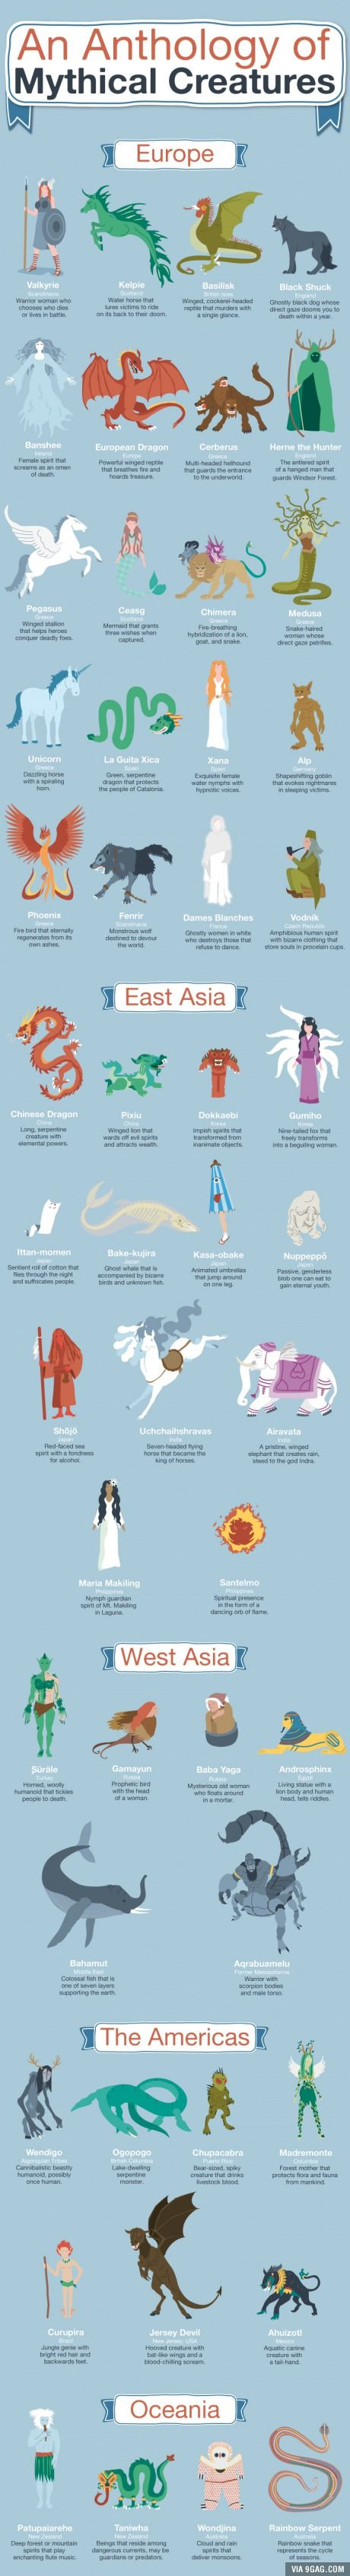 50 Mythical Creatures From Around the Globe ♦ℬїт¢ℌαℓї¢їøυ﹩♦